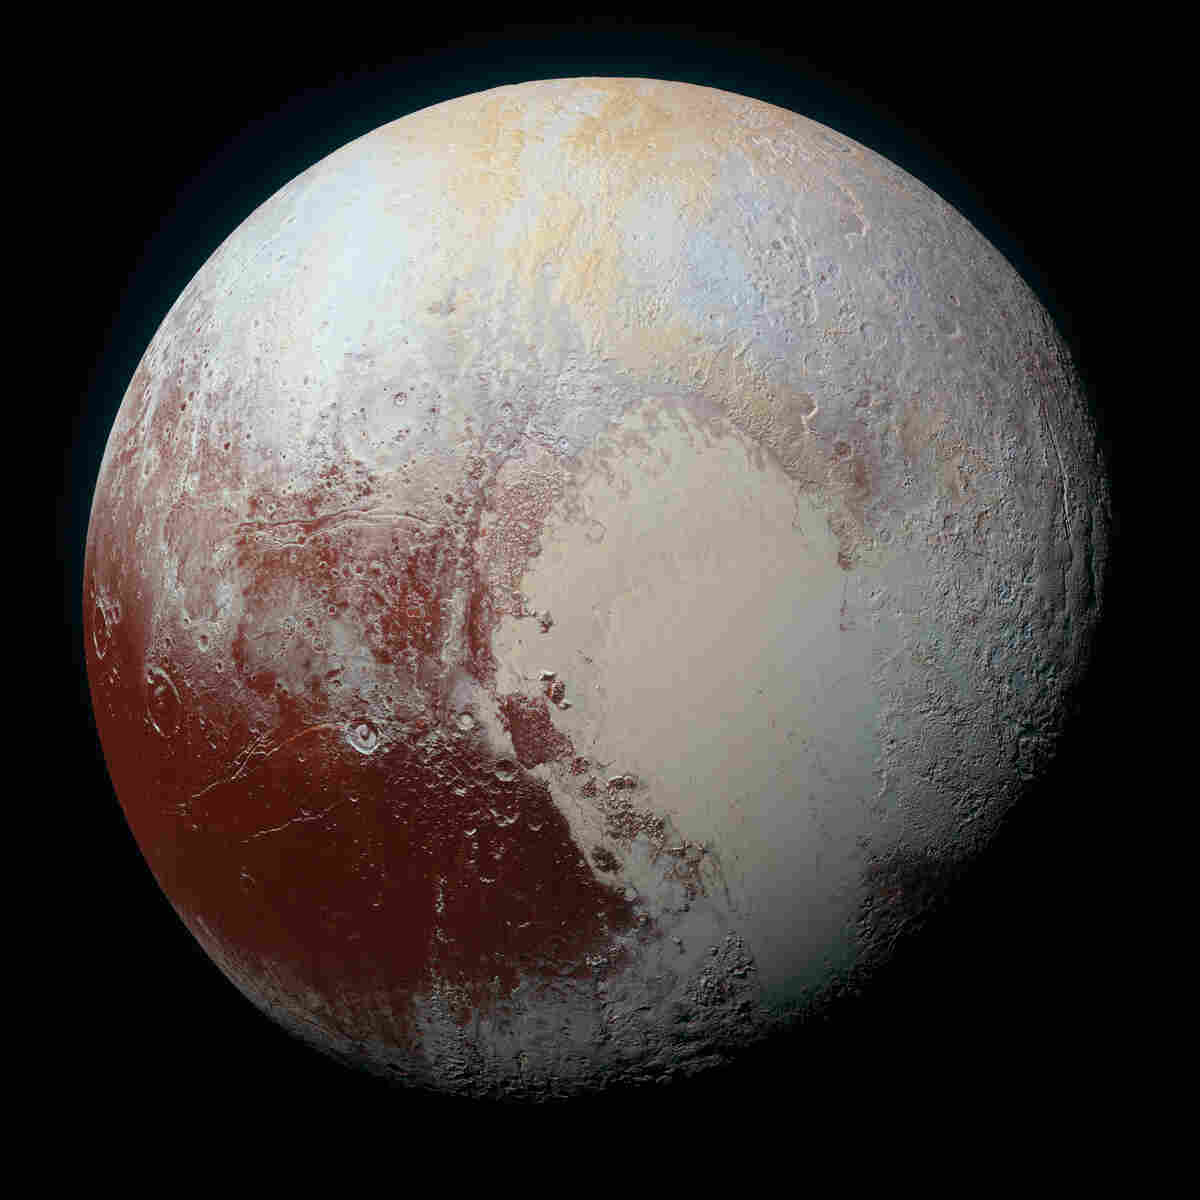 NASA's New Horizon mission flew past Pluto on July 14, revealing a world with glaciers, mountains and an atmosphere.